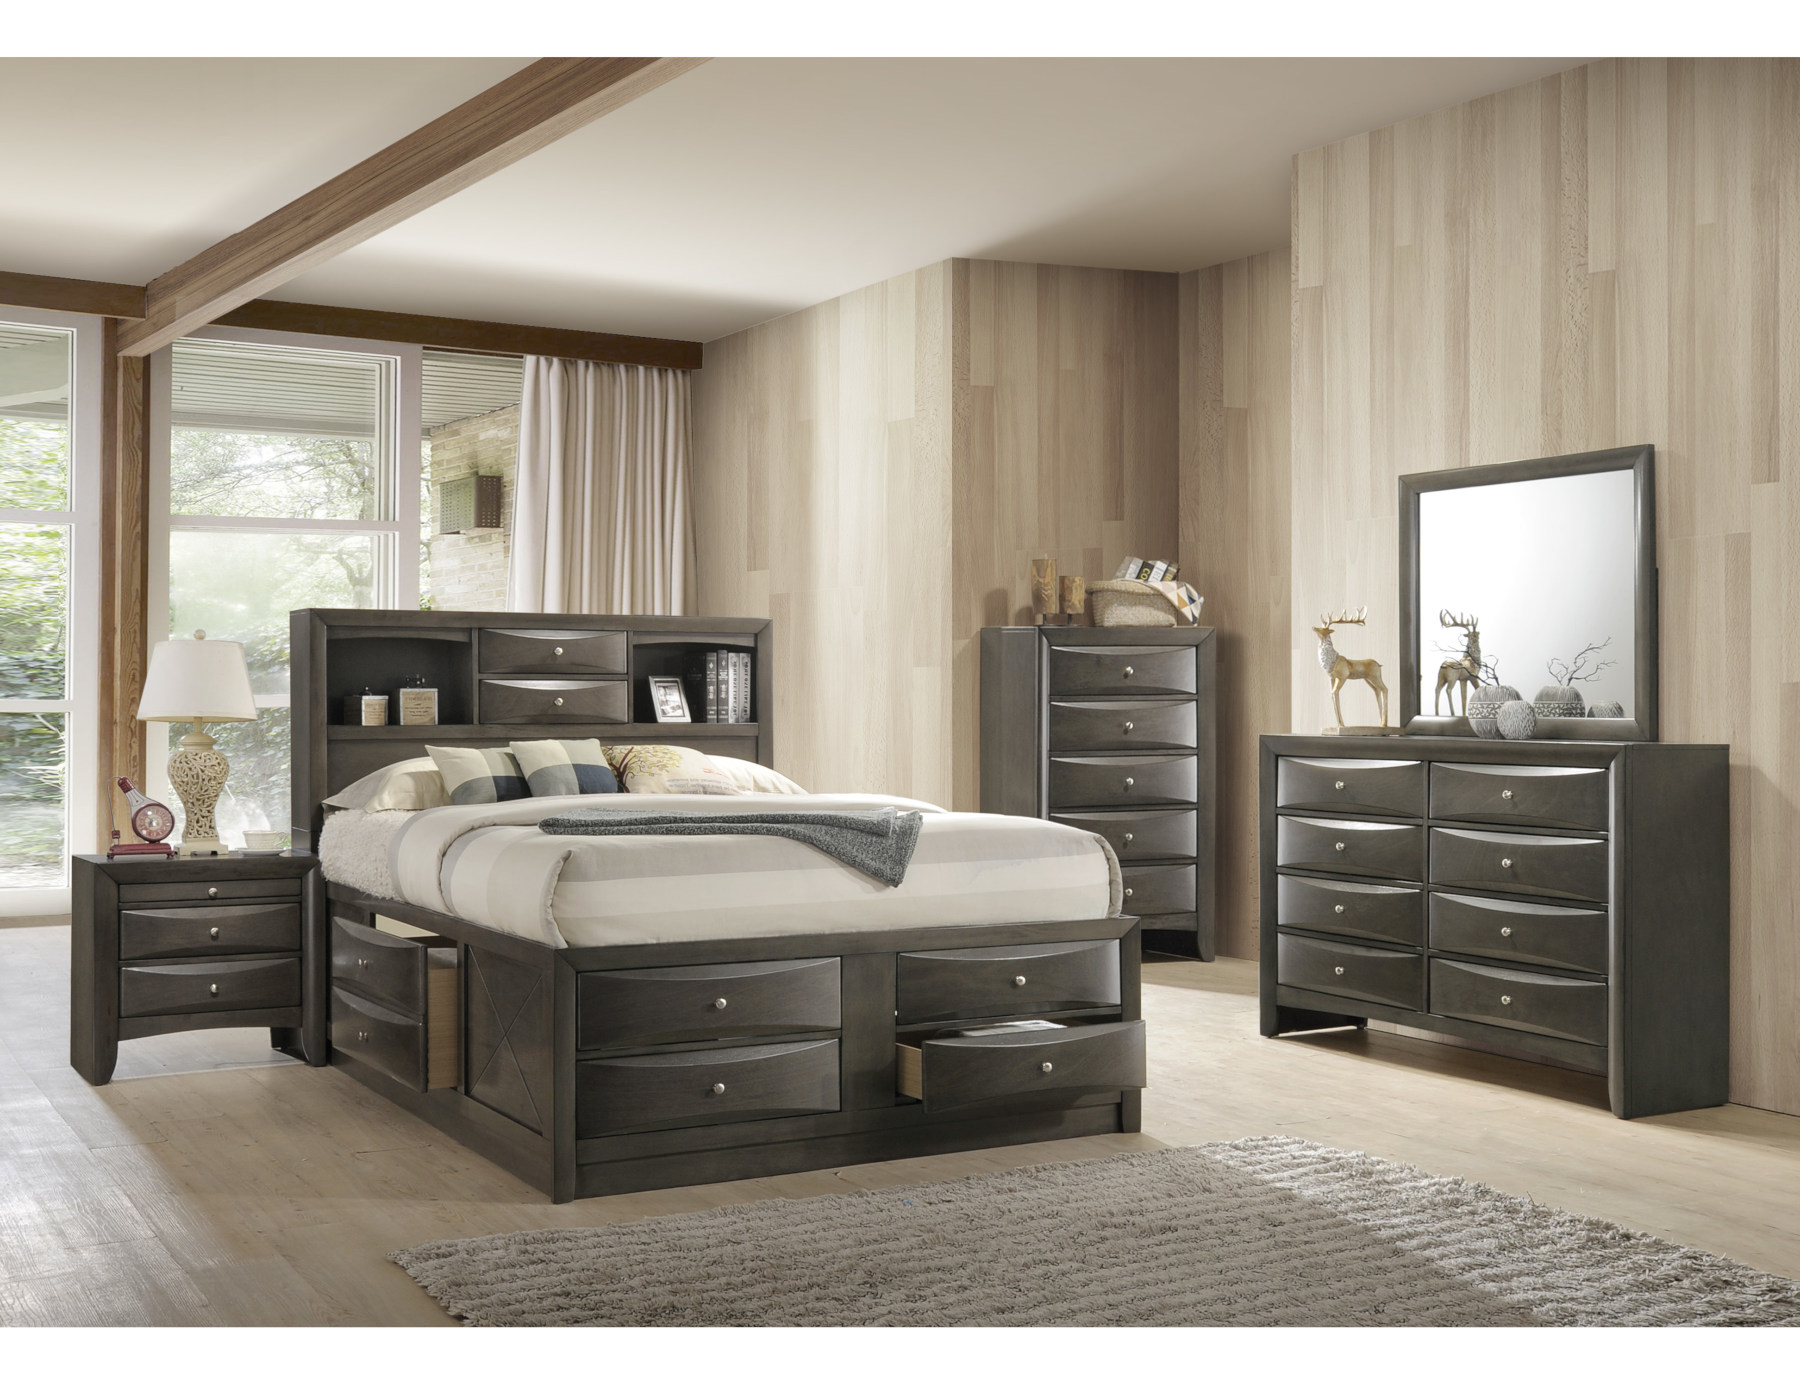 23525 – Storage Bedroom Set – CMK-4275